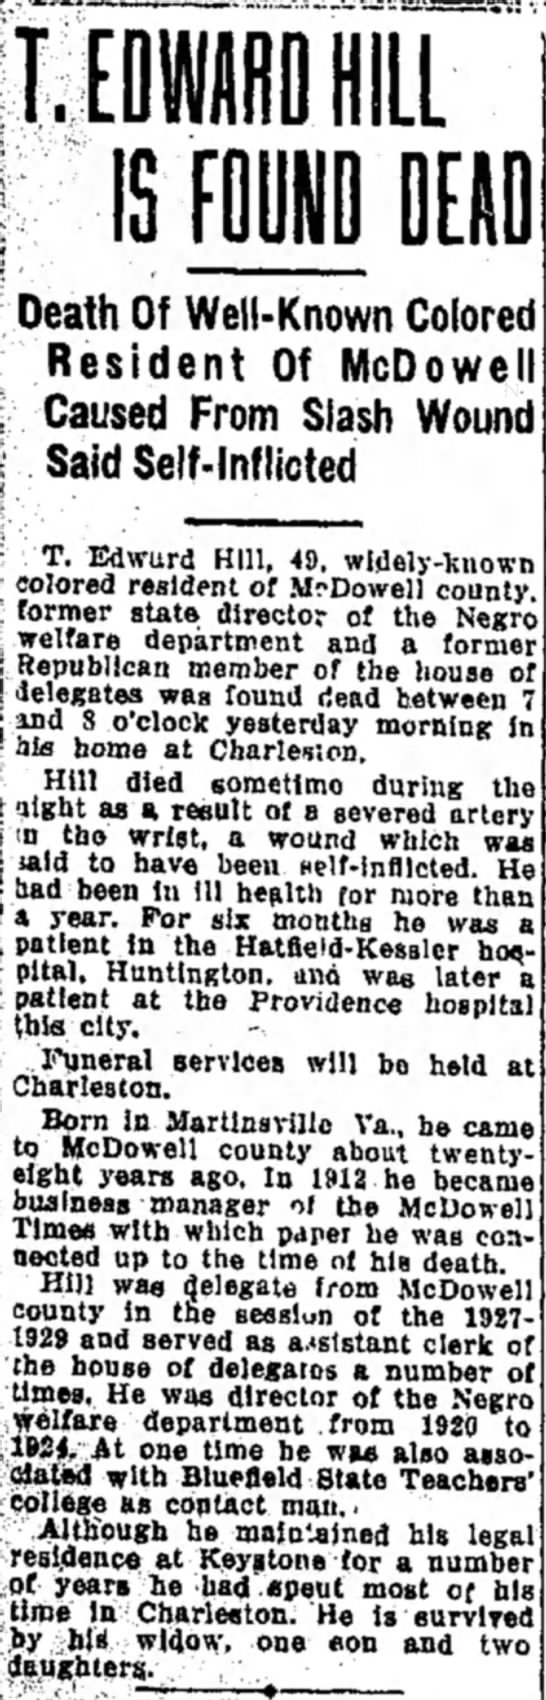 Dec 3,1932 Bluefield Daily Telegraph Death Coverage - T.E IS FOUND DEAD Death Of Weil-Known Colored...